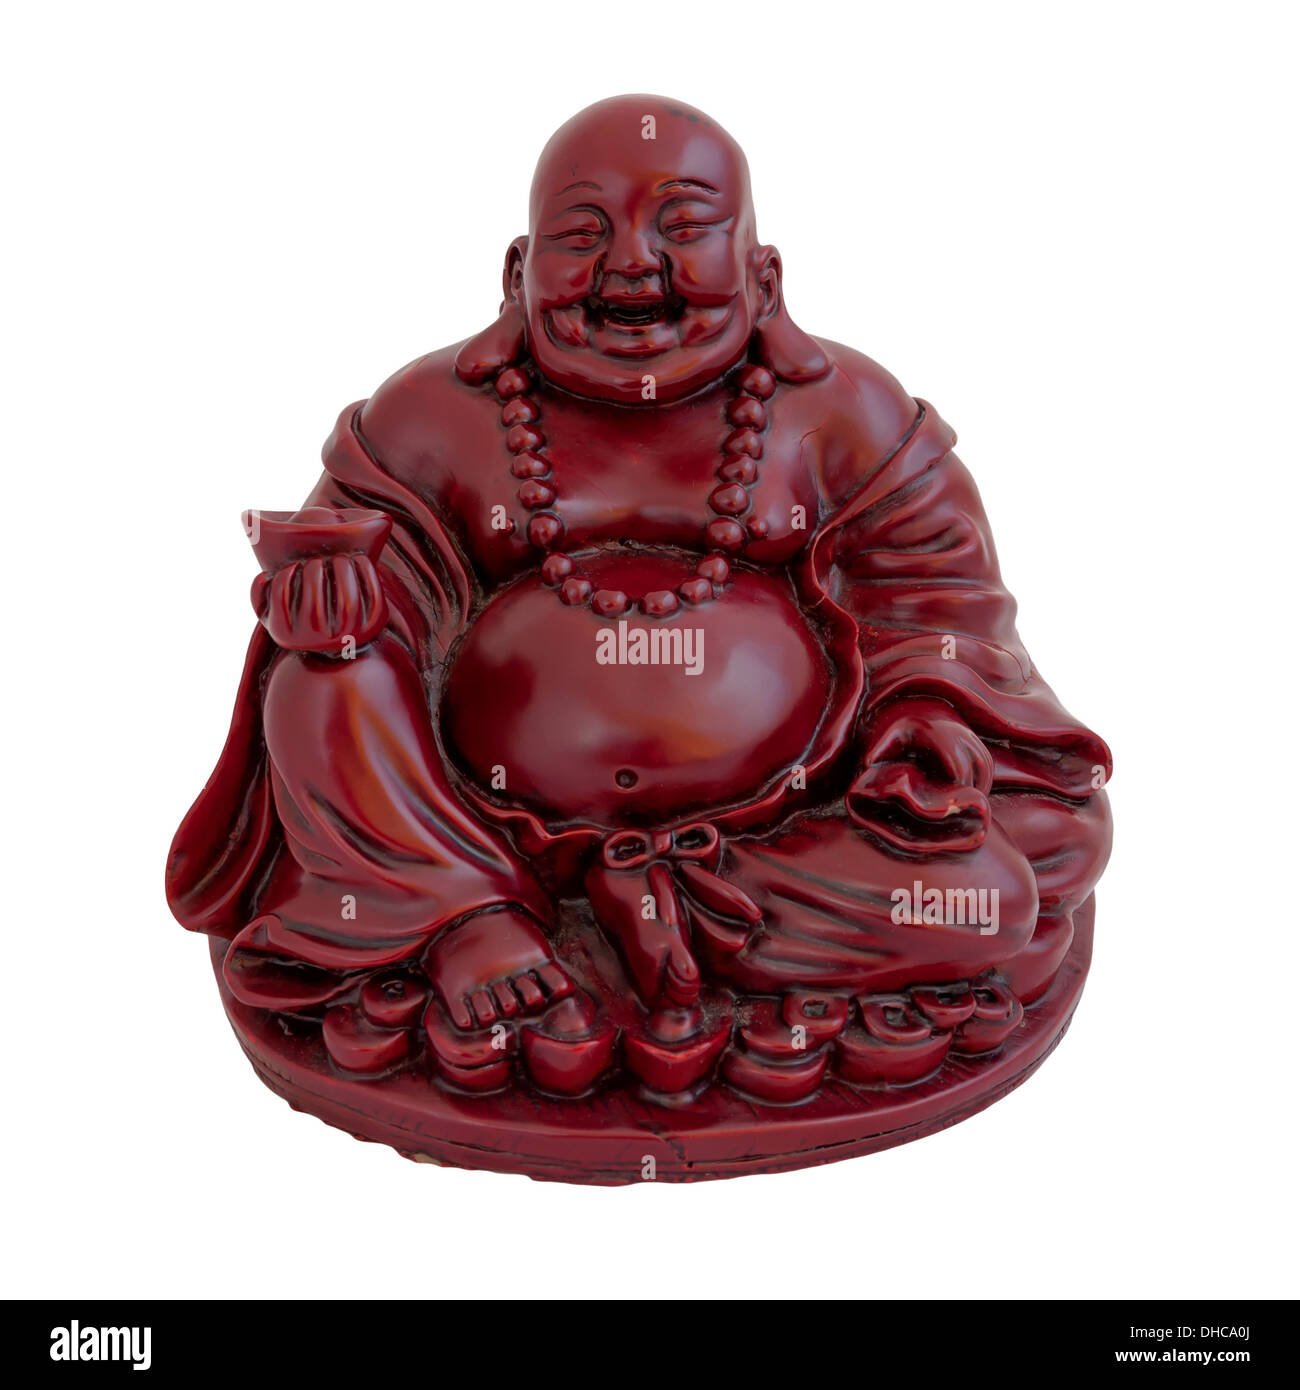 Statuette of smiling sitting Buddha isolated on white - Stock Image